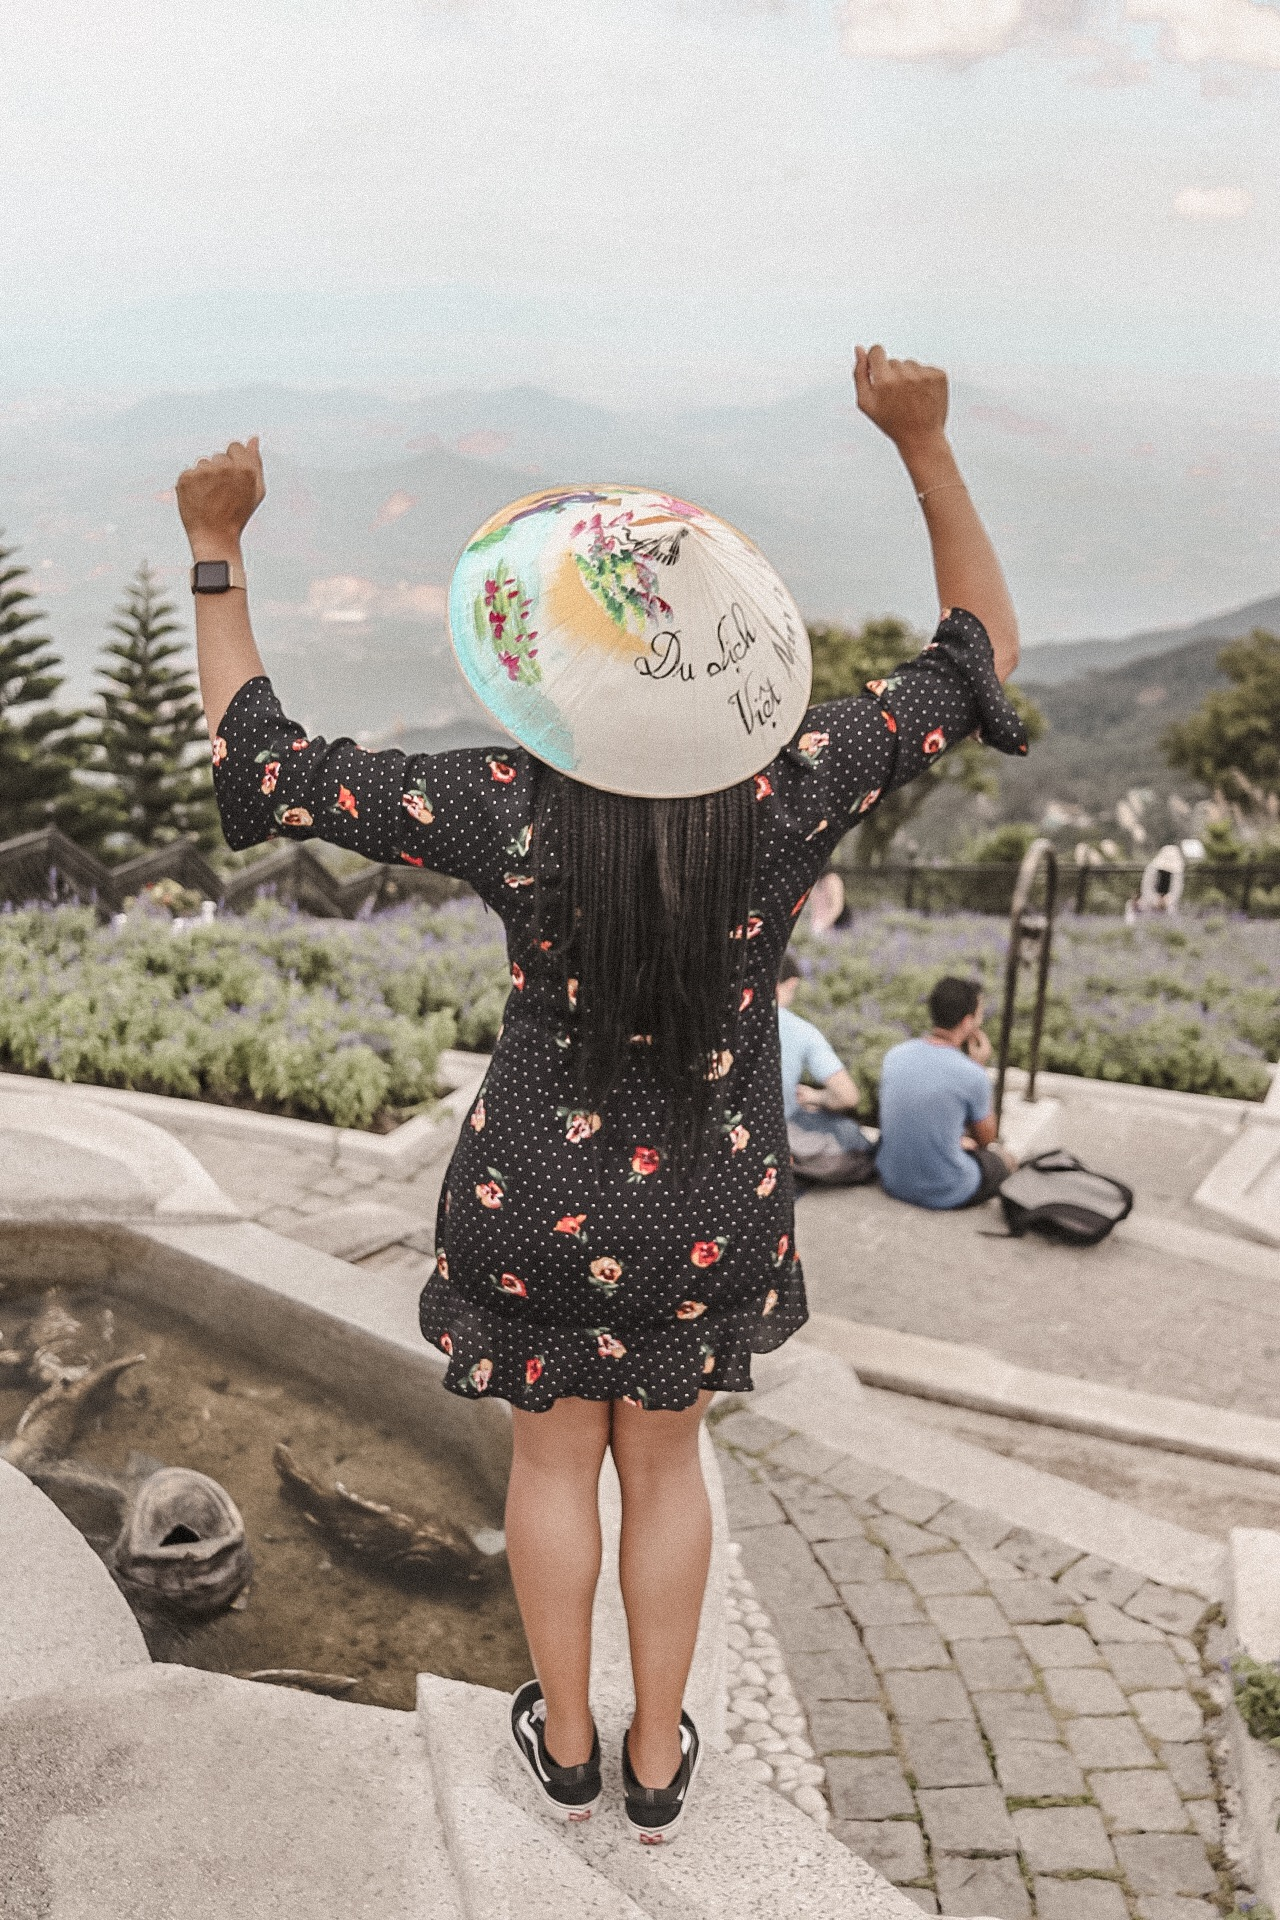 Overlooking Ba Na Hills at Sun World Theme Park, Da Nang, Vietnam